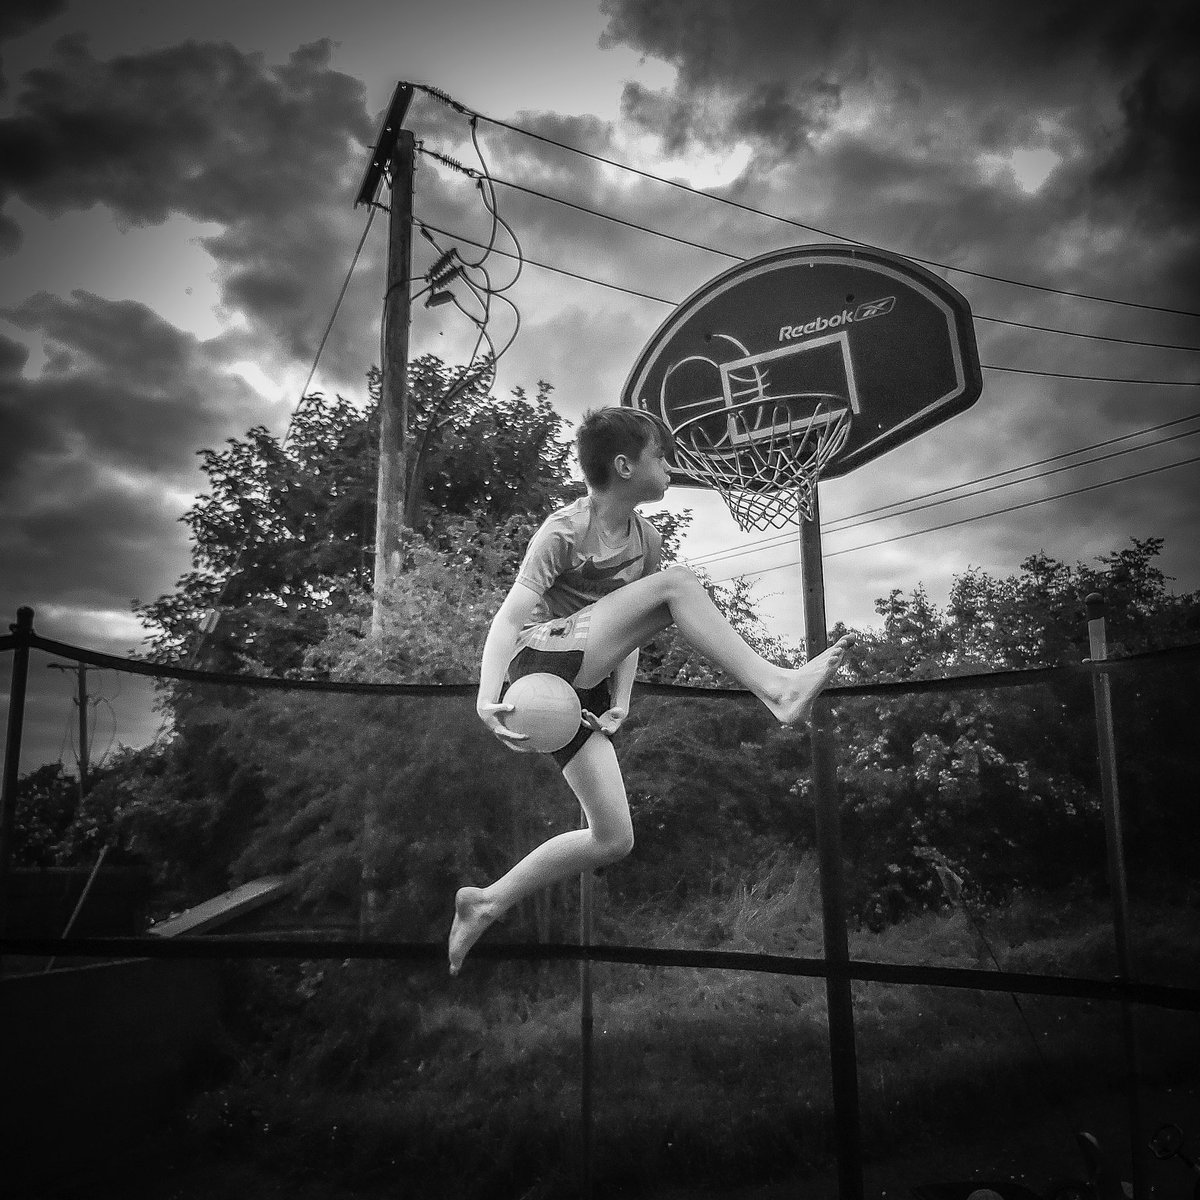 Wings  #basketball #blackandwhiteisworththefight #skyscape #sport #nike #reebok #light #blackandwhitephotography  #beautiful #cloudporn #flight  #picoftheday #irish_daily #sportsphotography #inspireland_  #instagood #wanderlustpic.twitter.com/ZoDIQEUz6Y